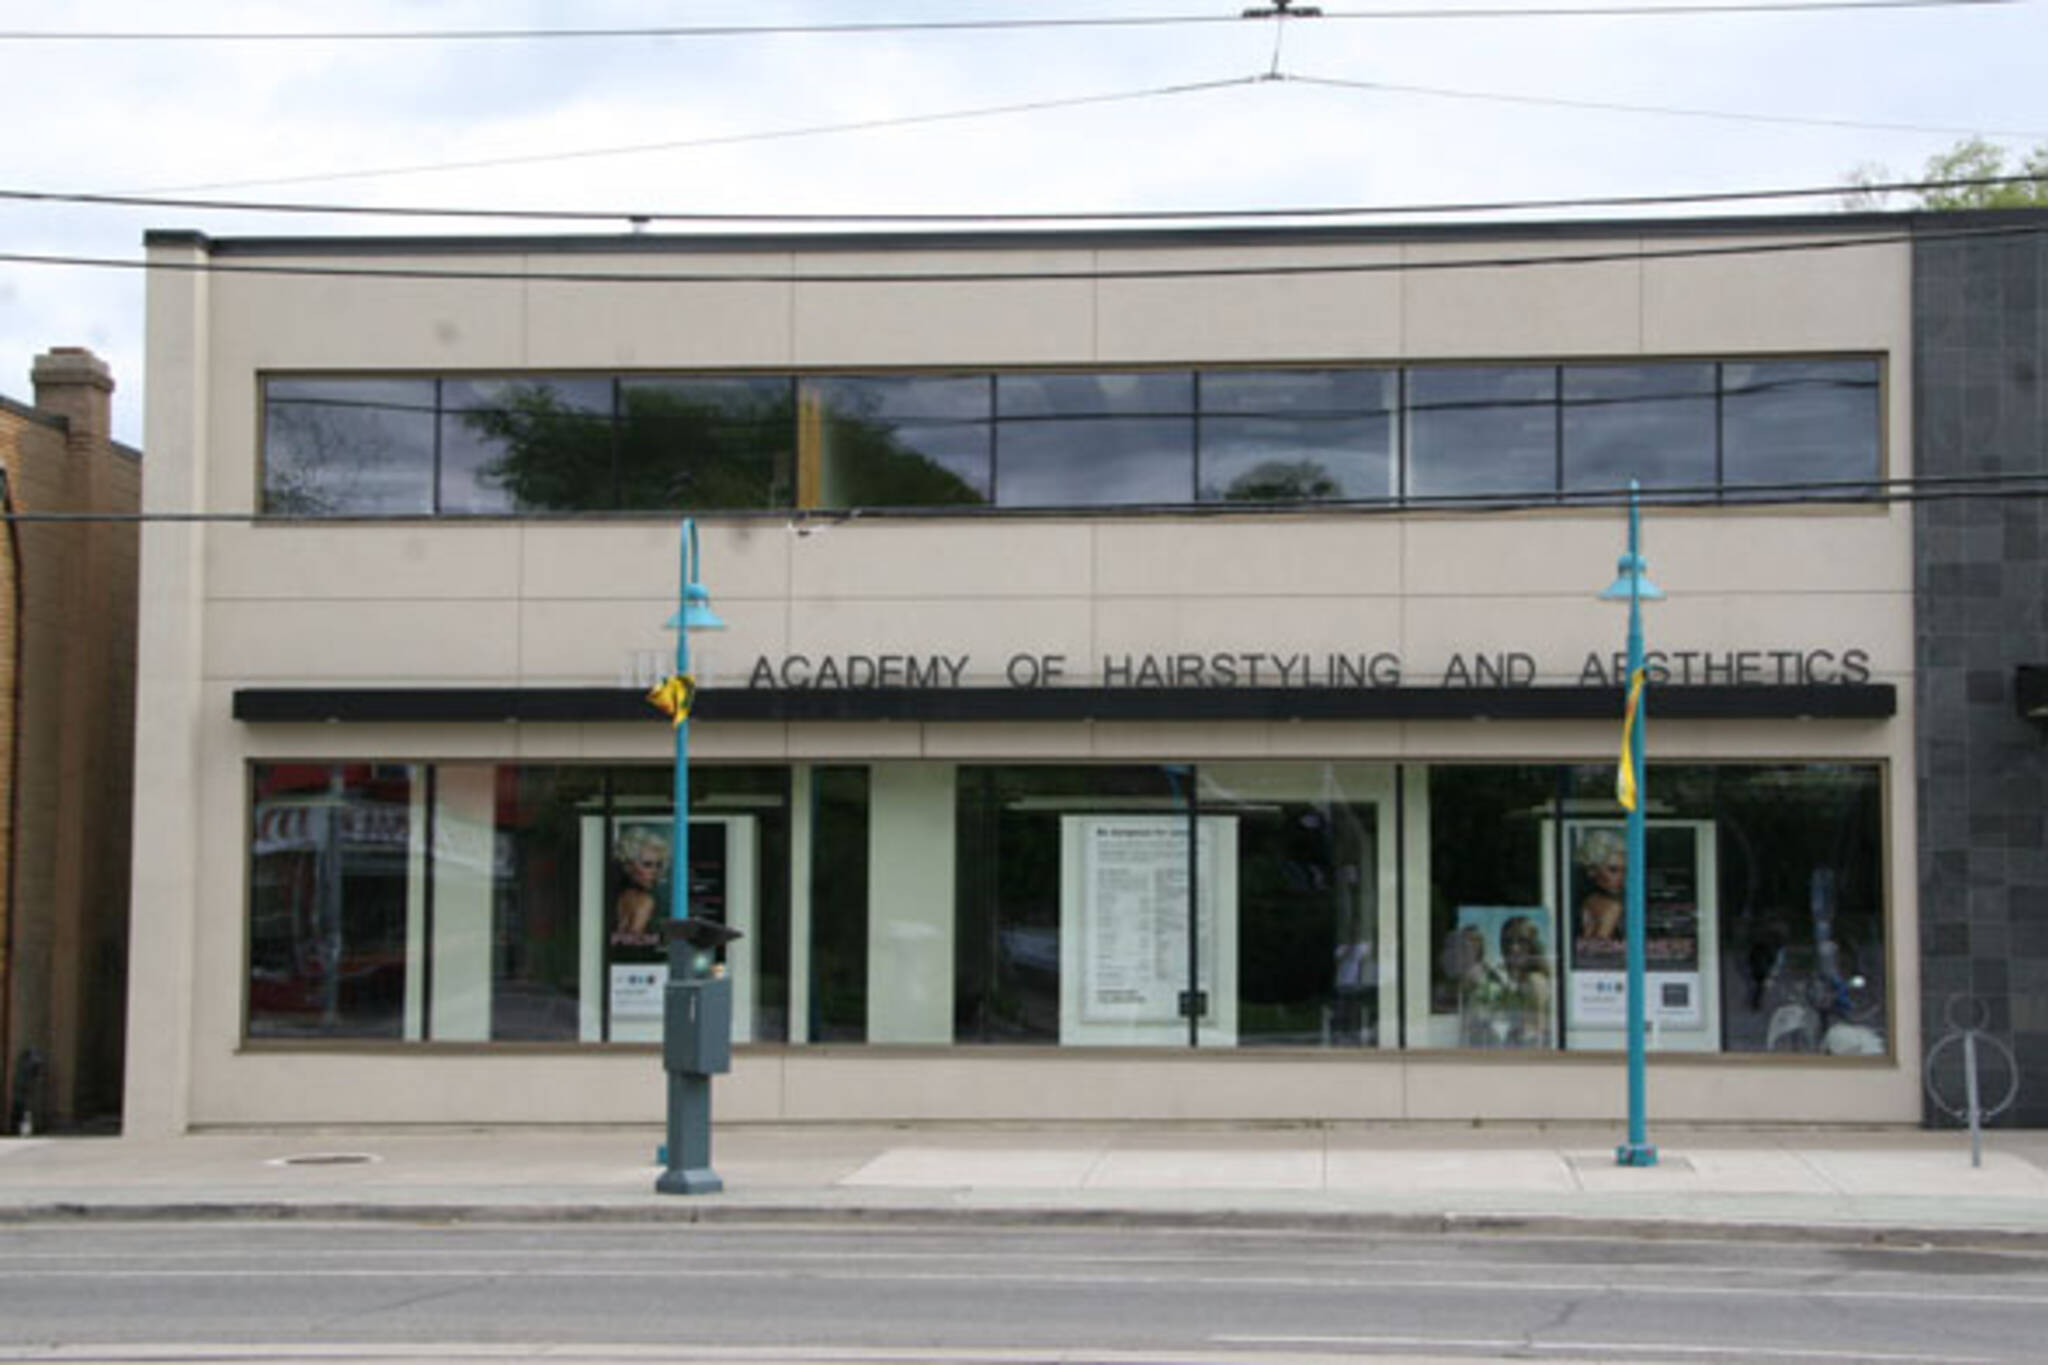 Academy of Hairstyling and Aesthetics Toronto